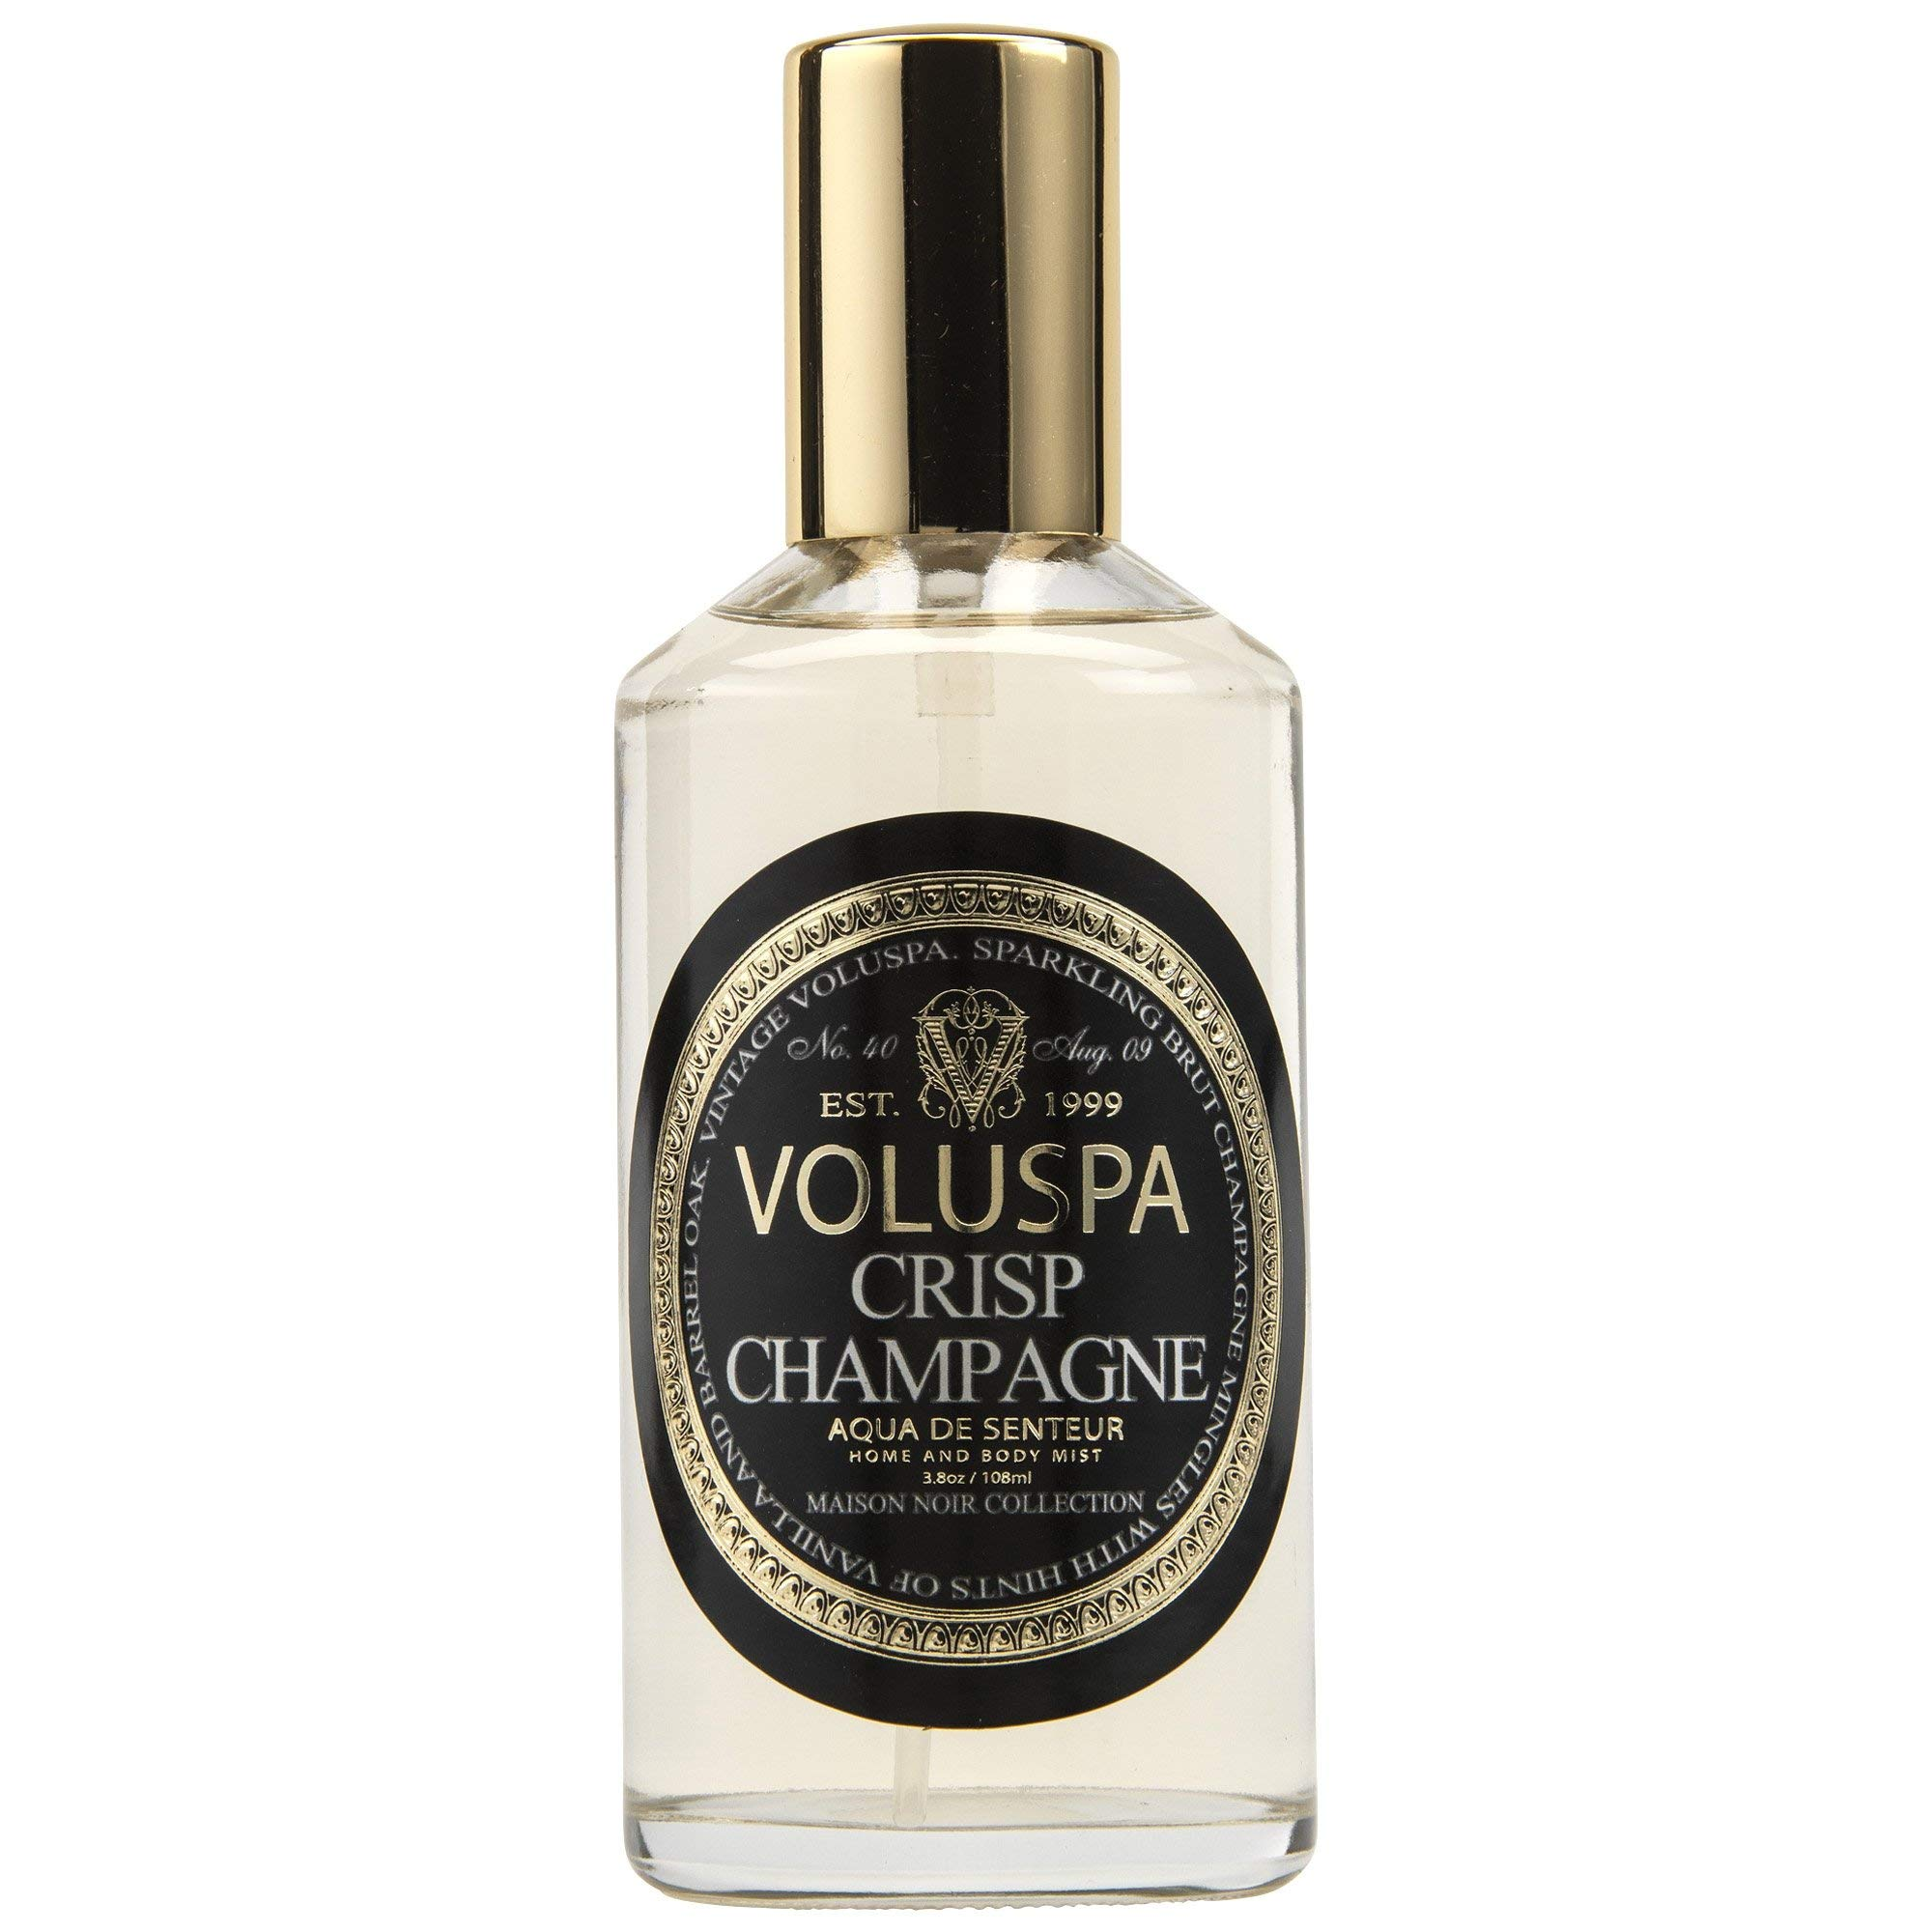 Voluspa Crisp Champagne Aqua De Senteur Room and Body Spray, 3.8 Ounce by Voluspa